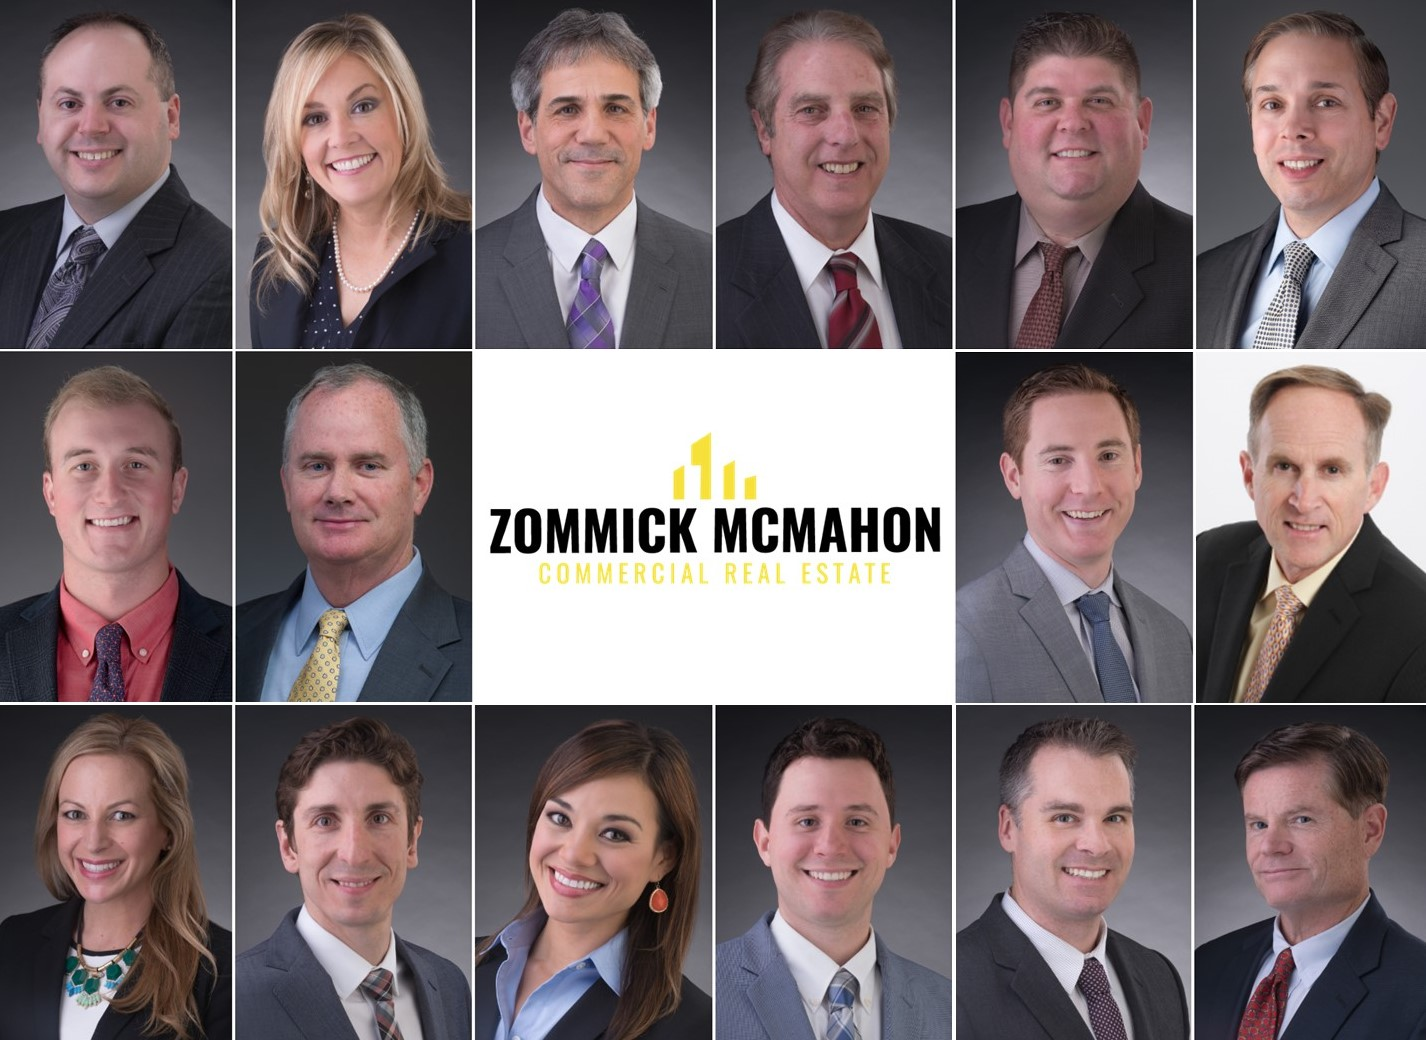 Zommick McMahon Simplifies the Complexities of Commercial Real Estate for Its Clients